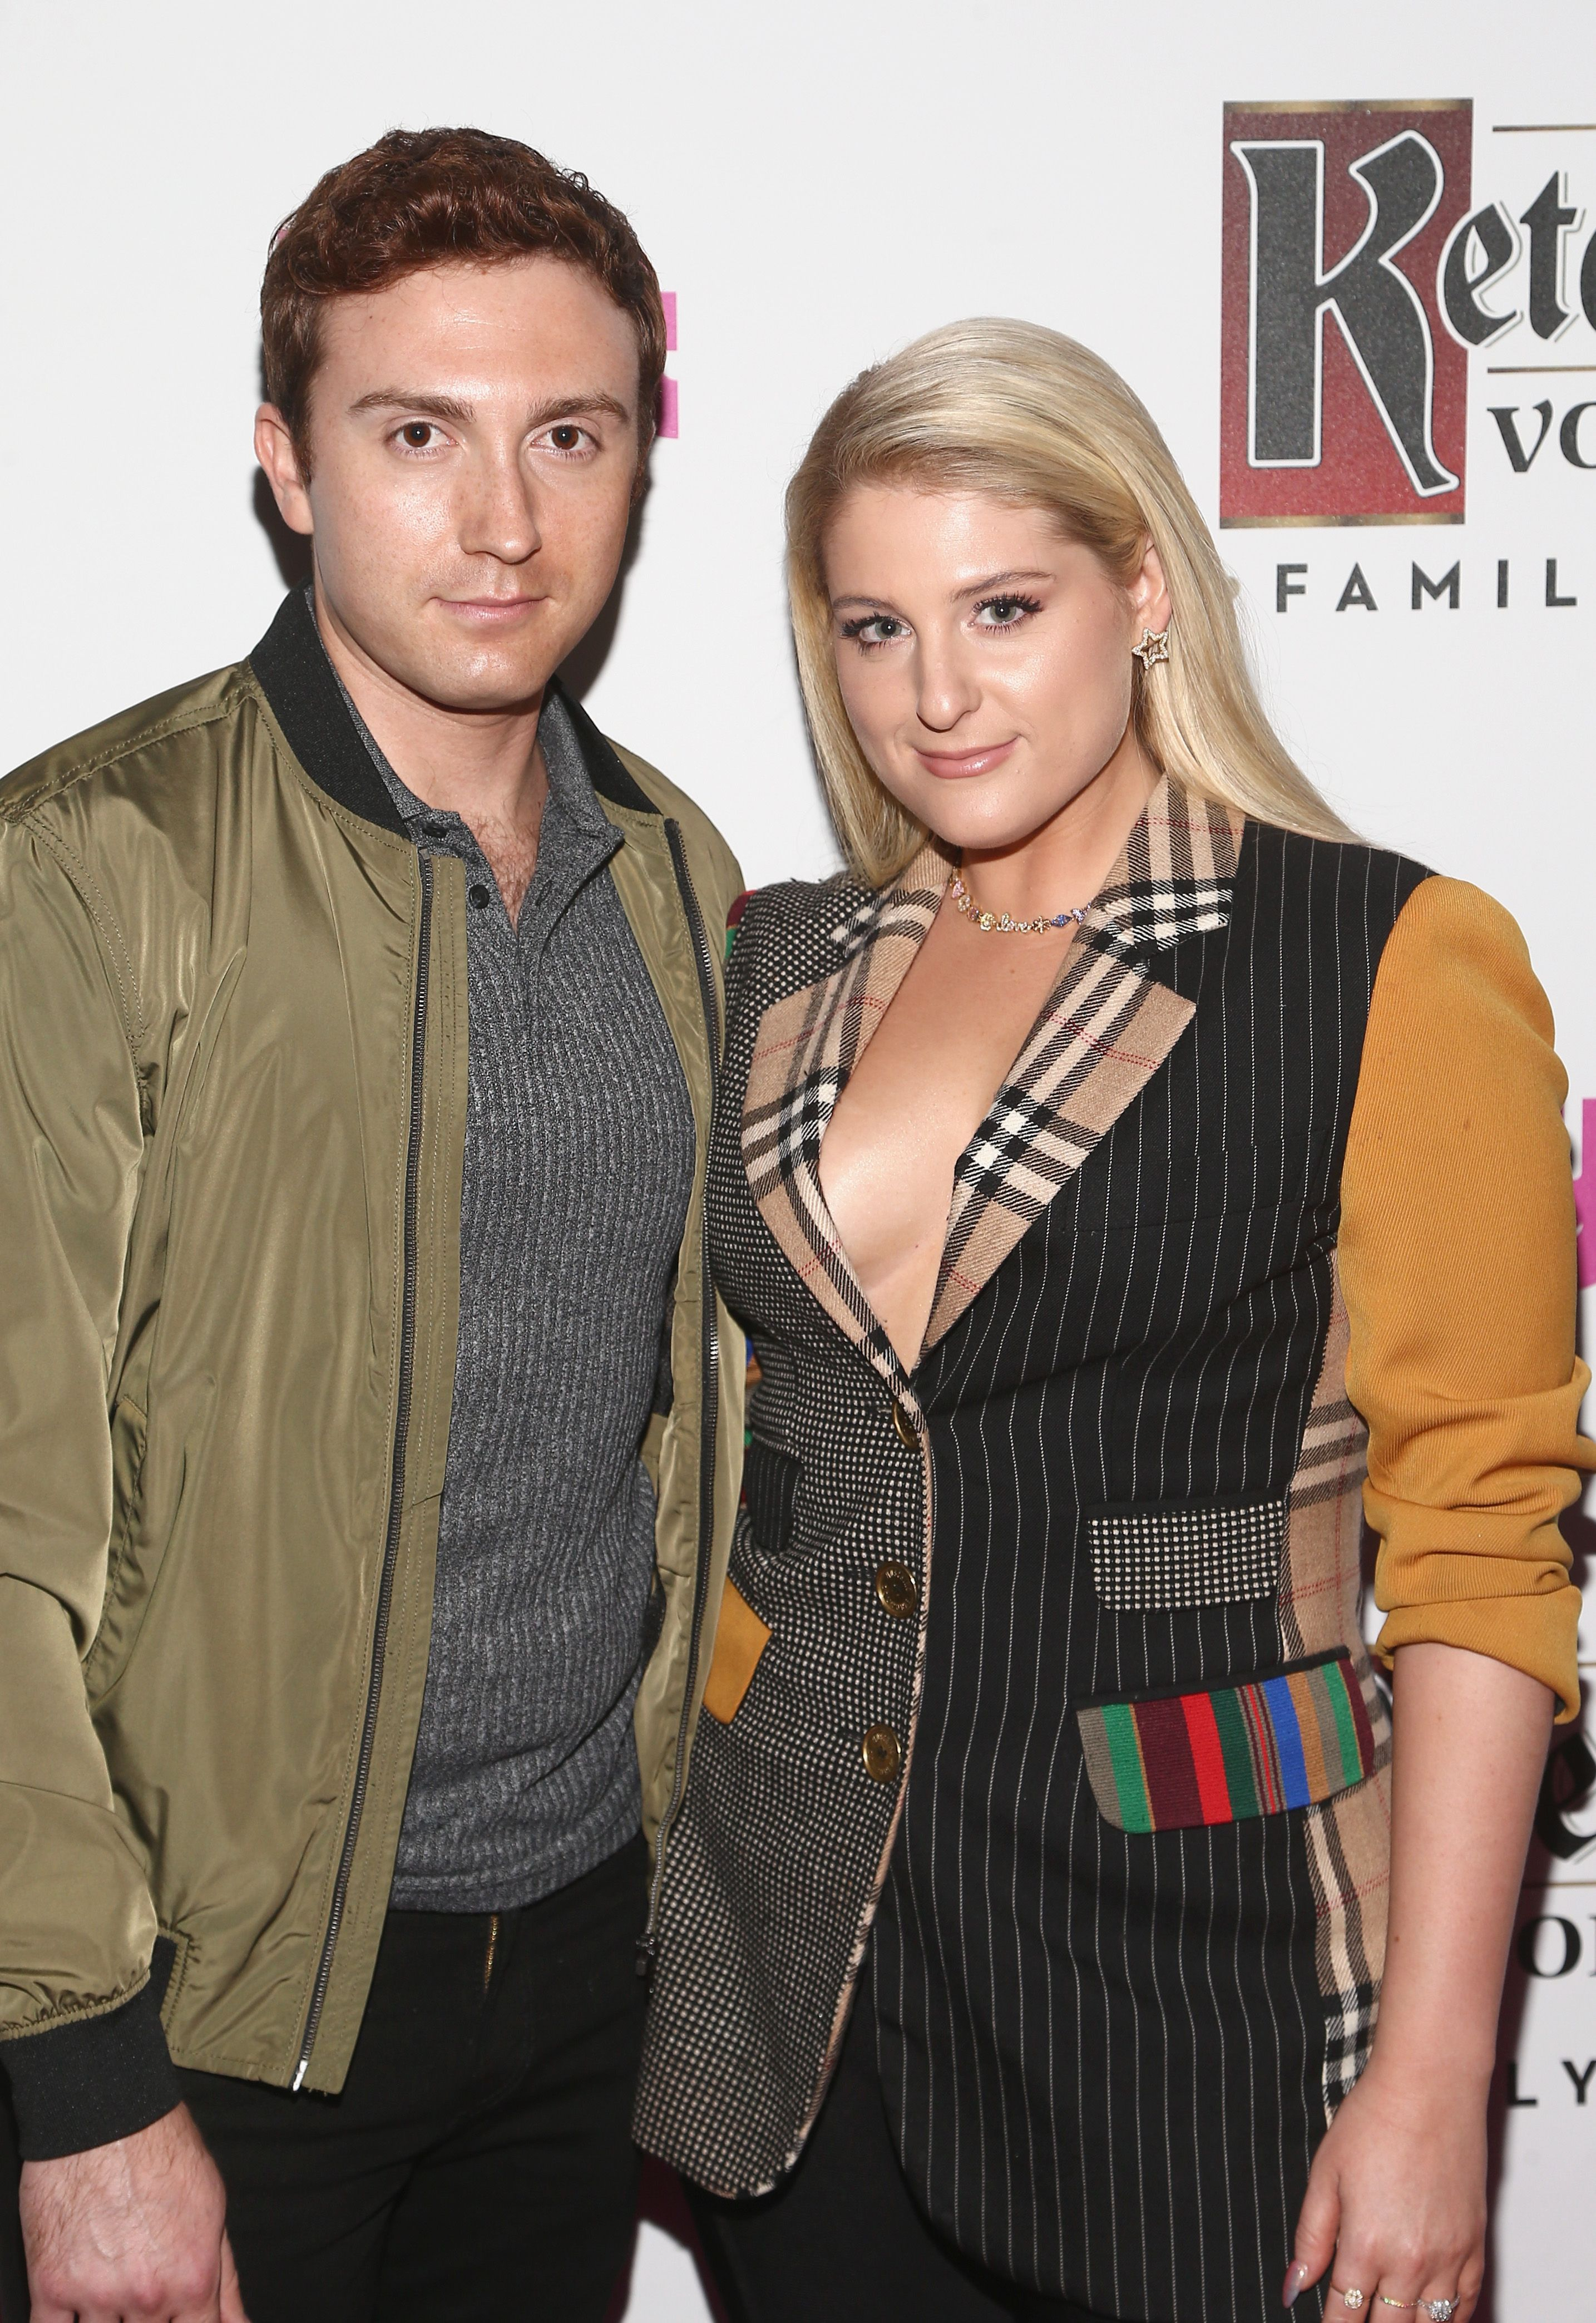 "Megan Trainor and Daryl Sabara Trainor credits the good taste of her friend Chloë Grace Moretz for helping her find love with actor Daryl Sabara. ""[Chloë] is a friend of mine, and day one of meeting her, I was like, 'You know anybody that I could date?'"" she said on Chelsea Handler's Netflix series."